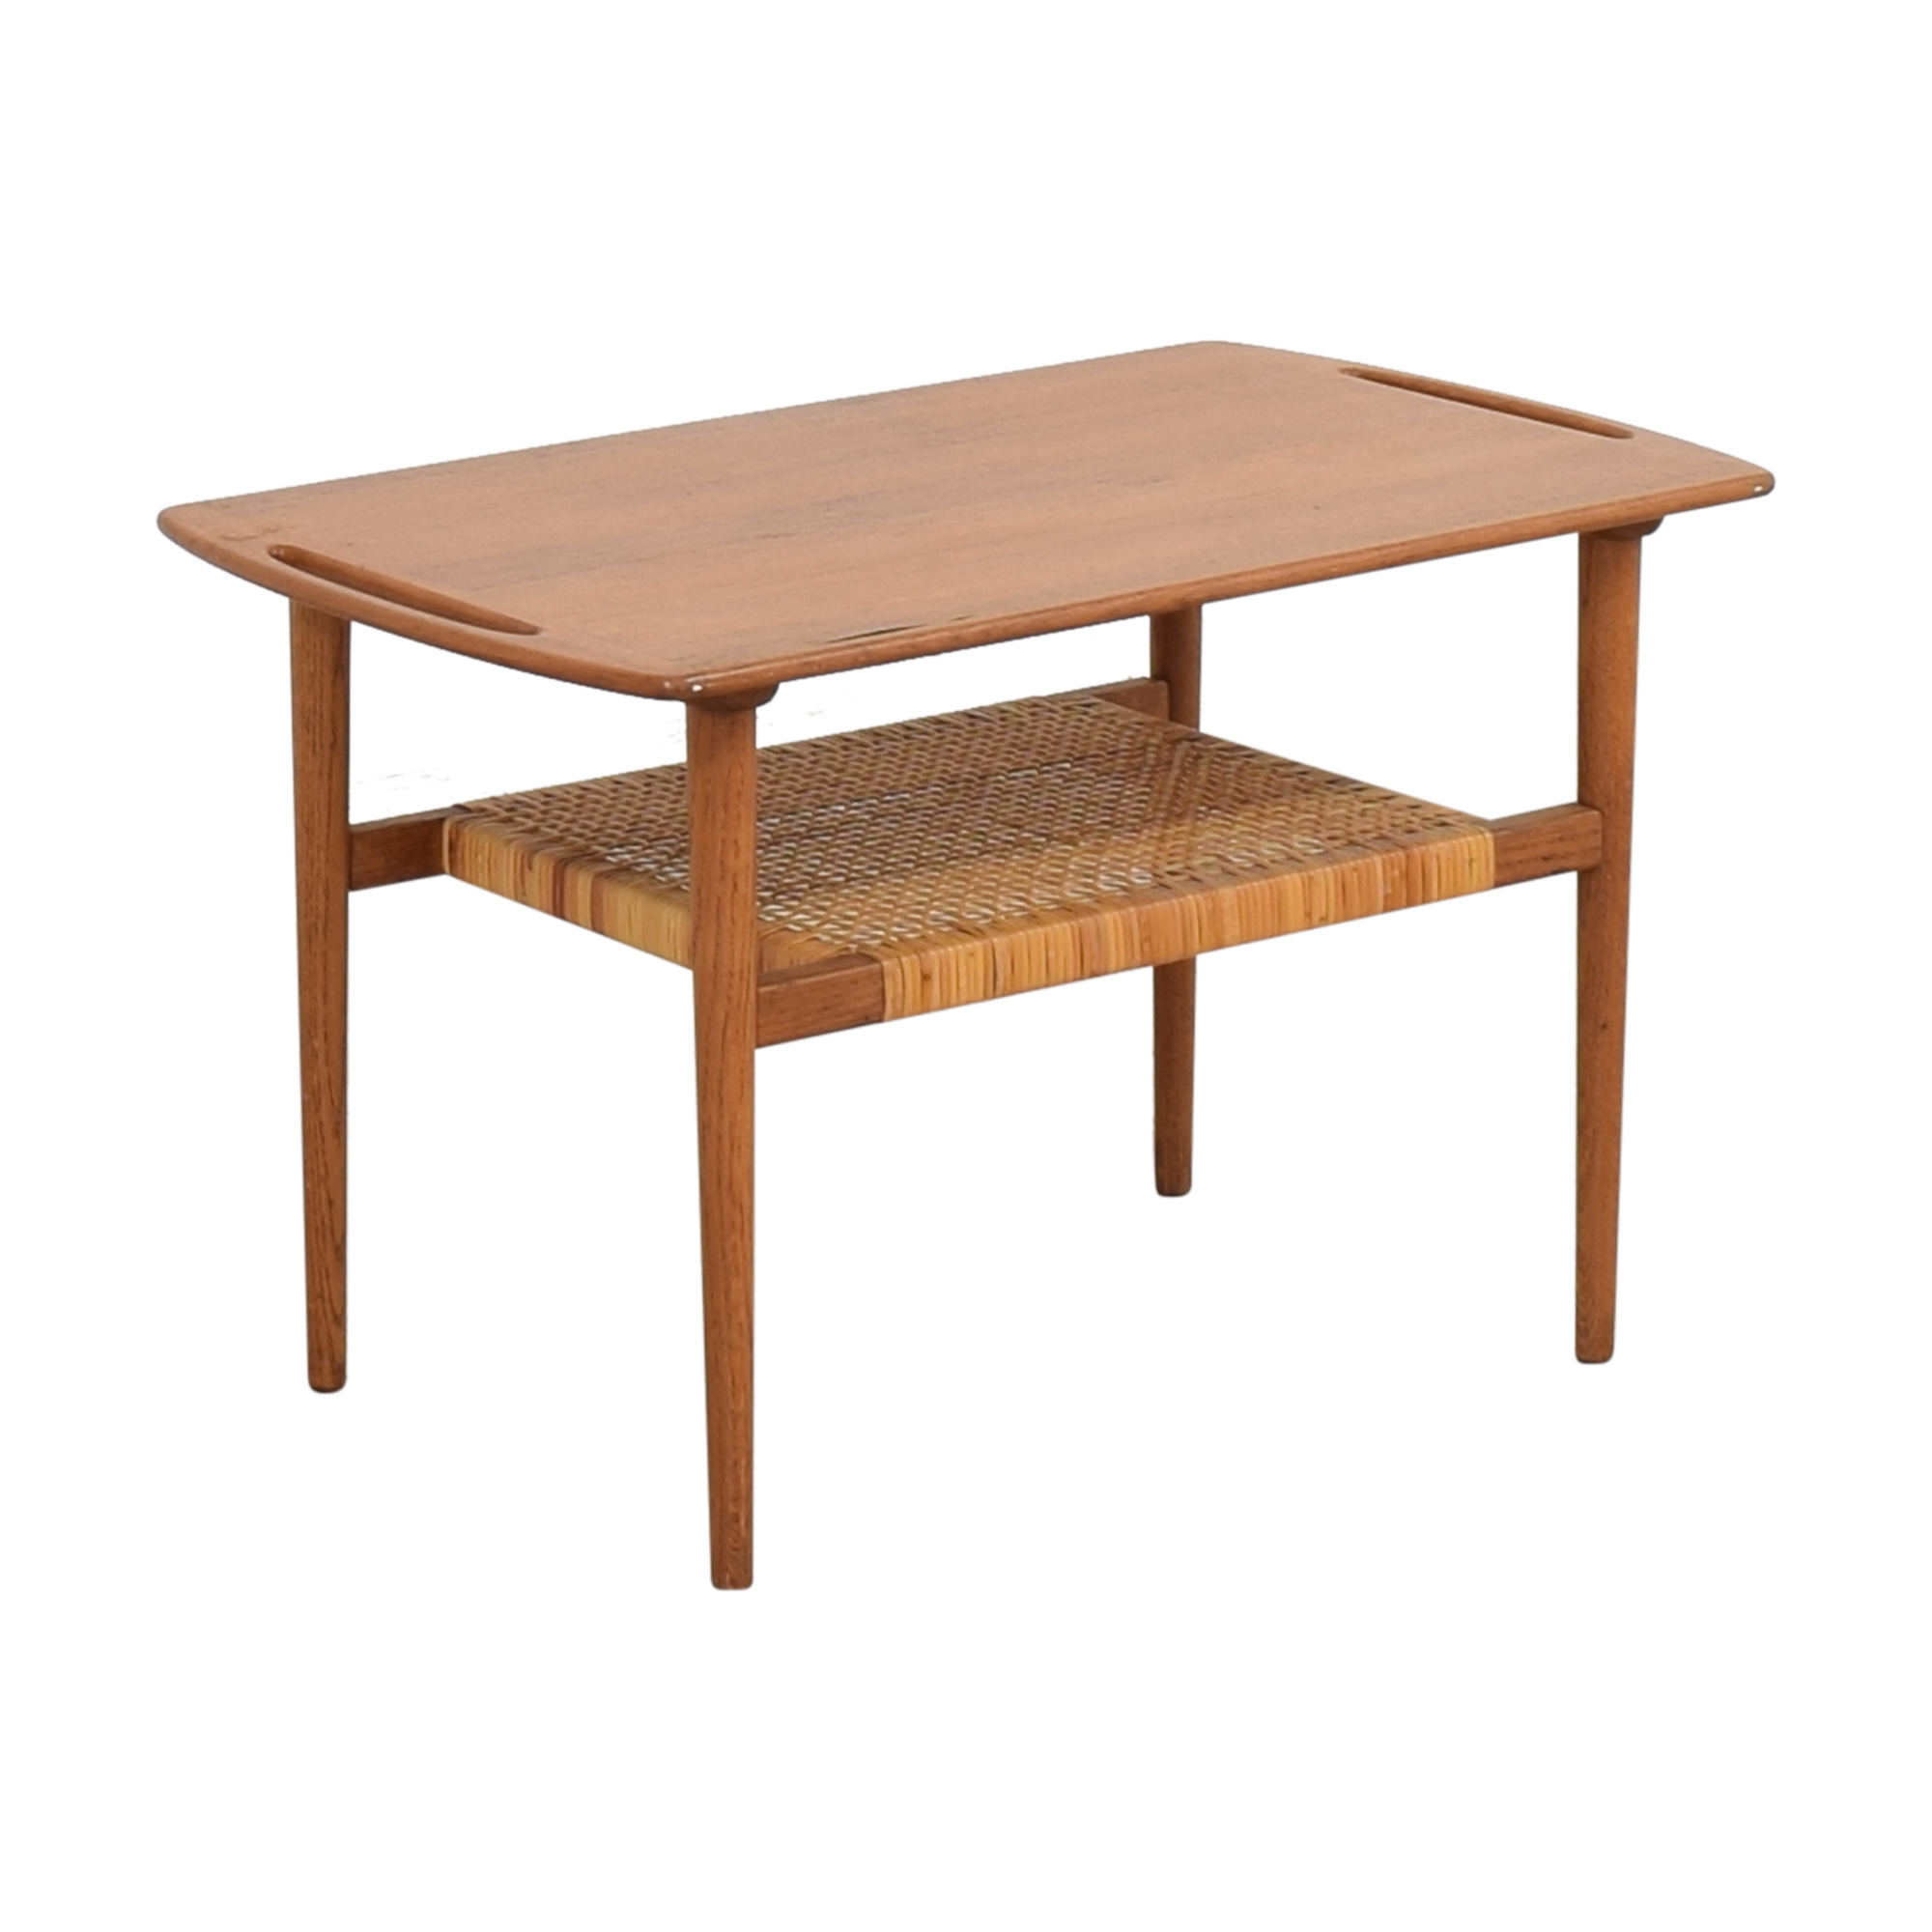 Andreas Tuck Andreas Tuck Cane Shelf Side Table dimensions